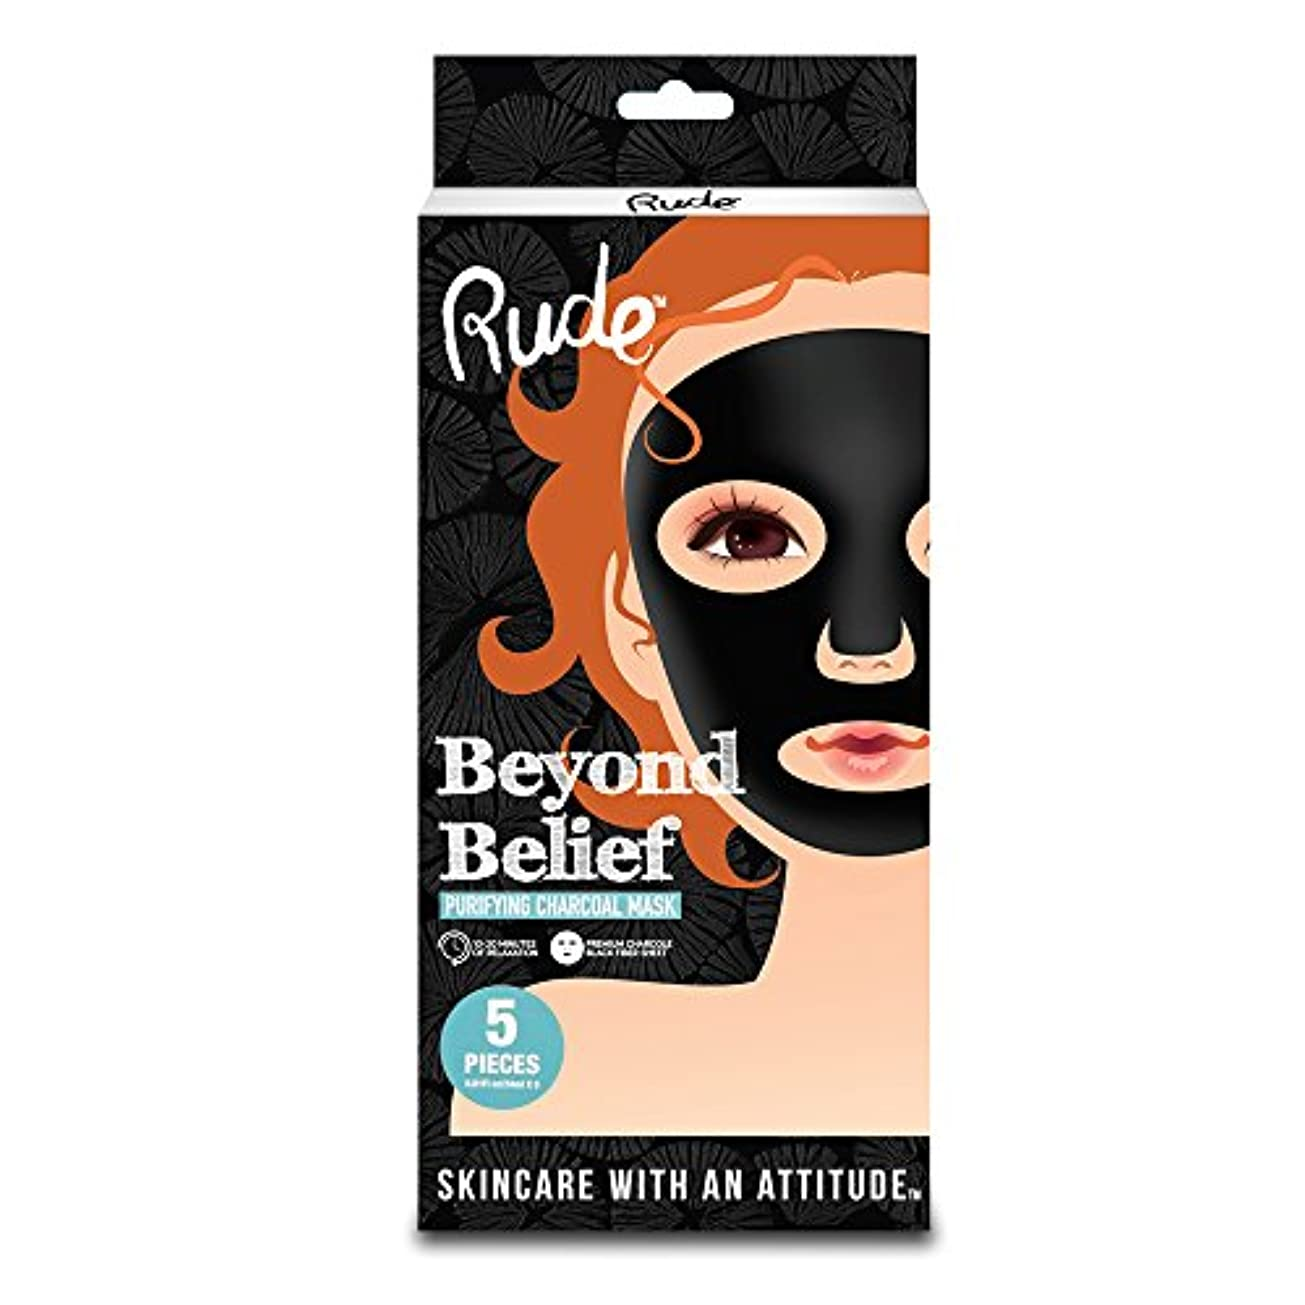 ペルソナ透過性放棄RUDE Beyond Belief Purifying Charcoal Mask 5 Piece Pack (並行輸入品)